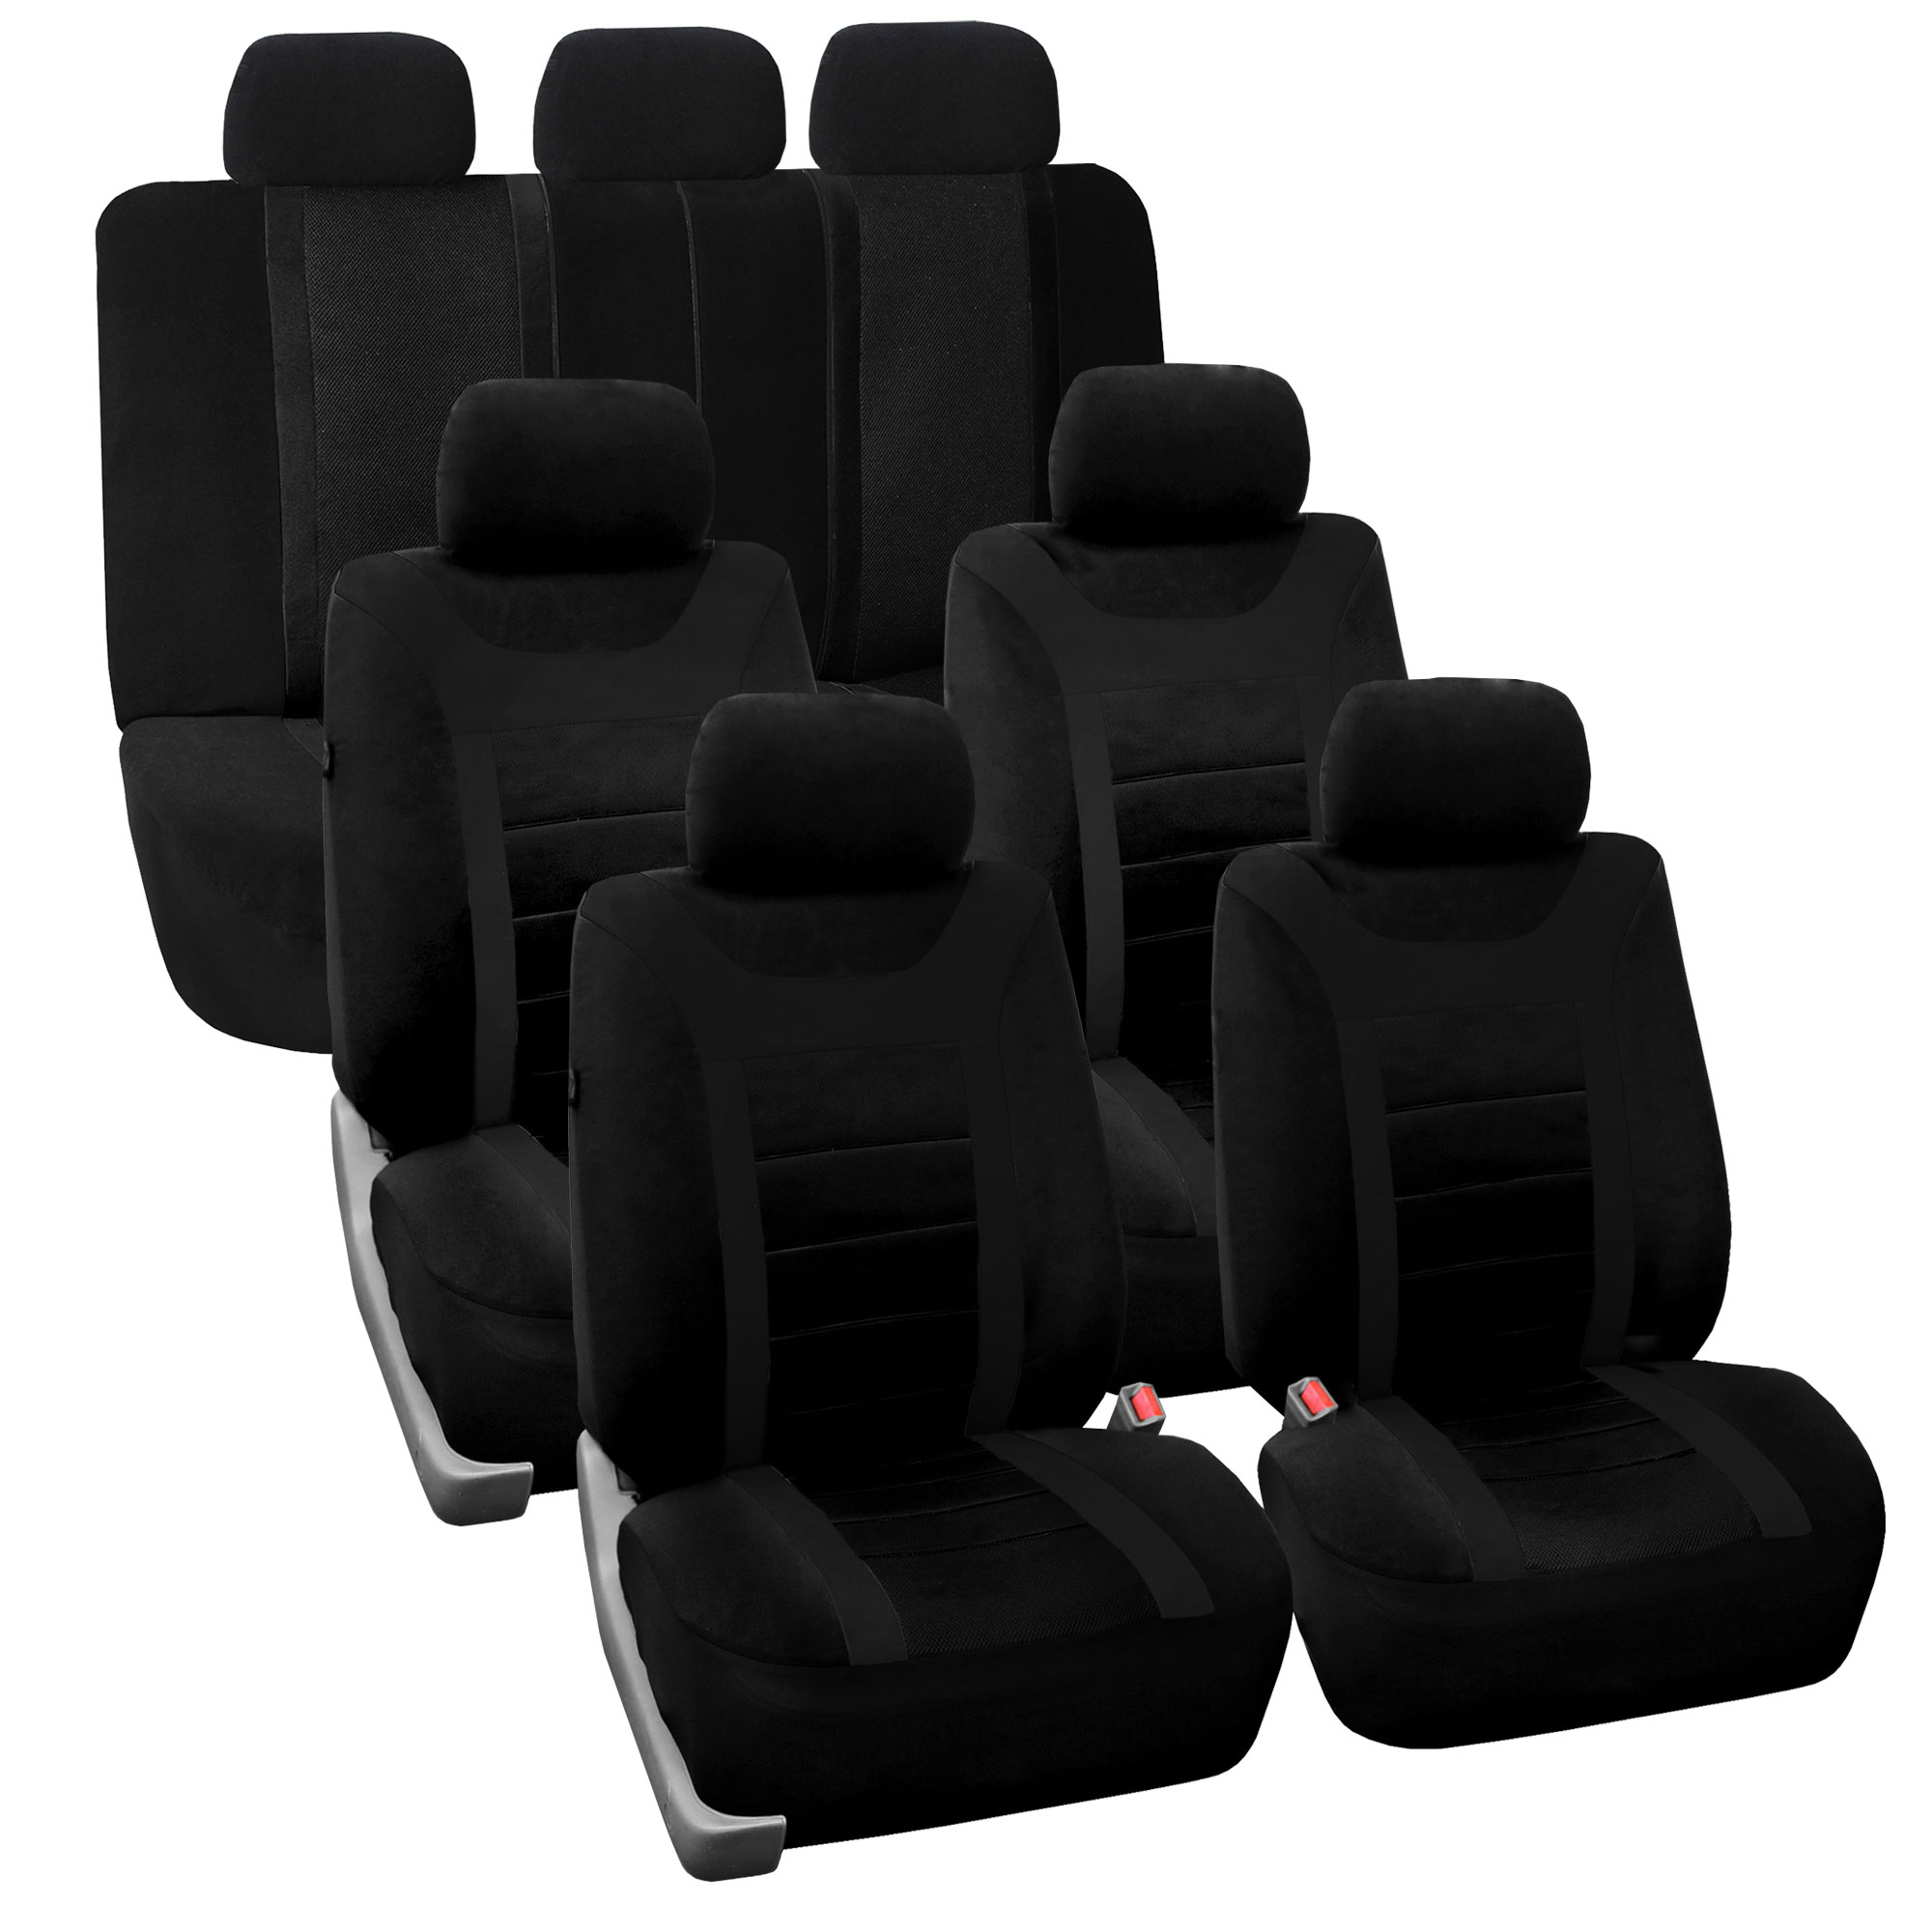 3 row car seat cover set top quality luxury for suv truck minivan ebay. Black Bedroom Furniture Sets. Home Design Ideas